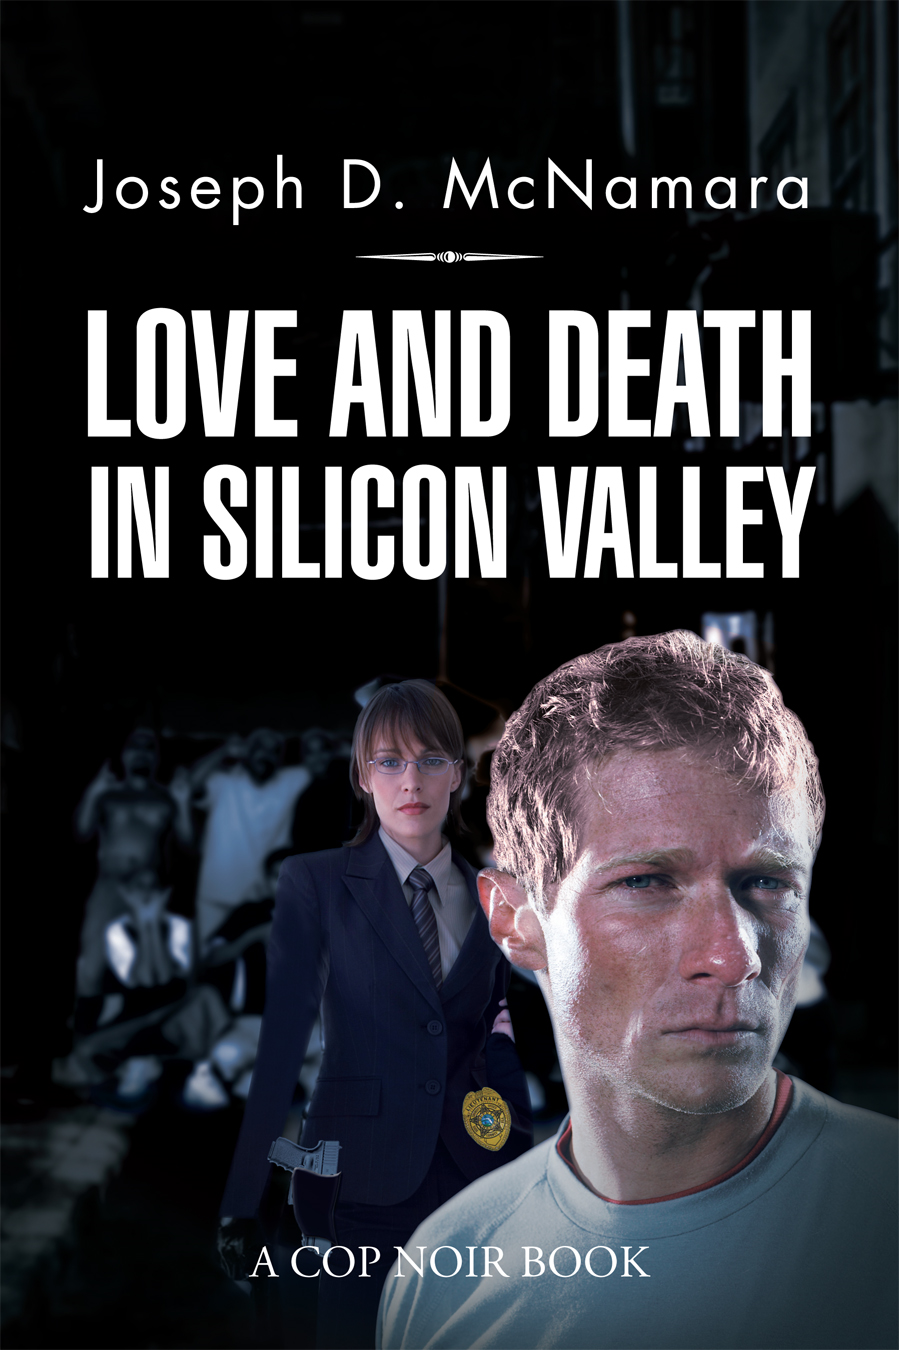 LOVE AND DEATH IN SILICON VALLEY By: Joseph D. McNamara